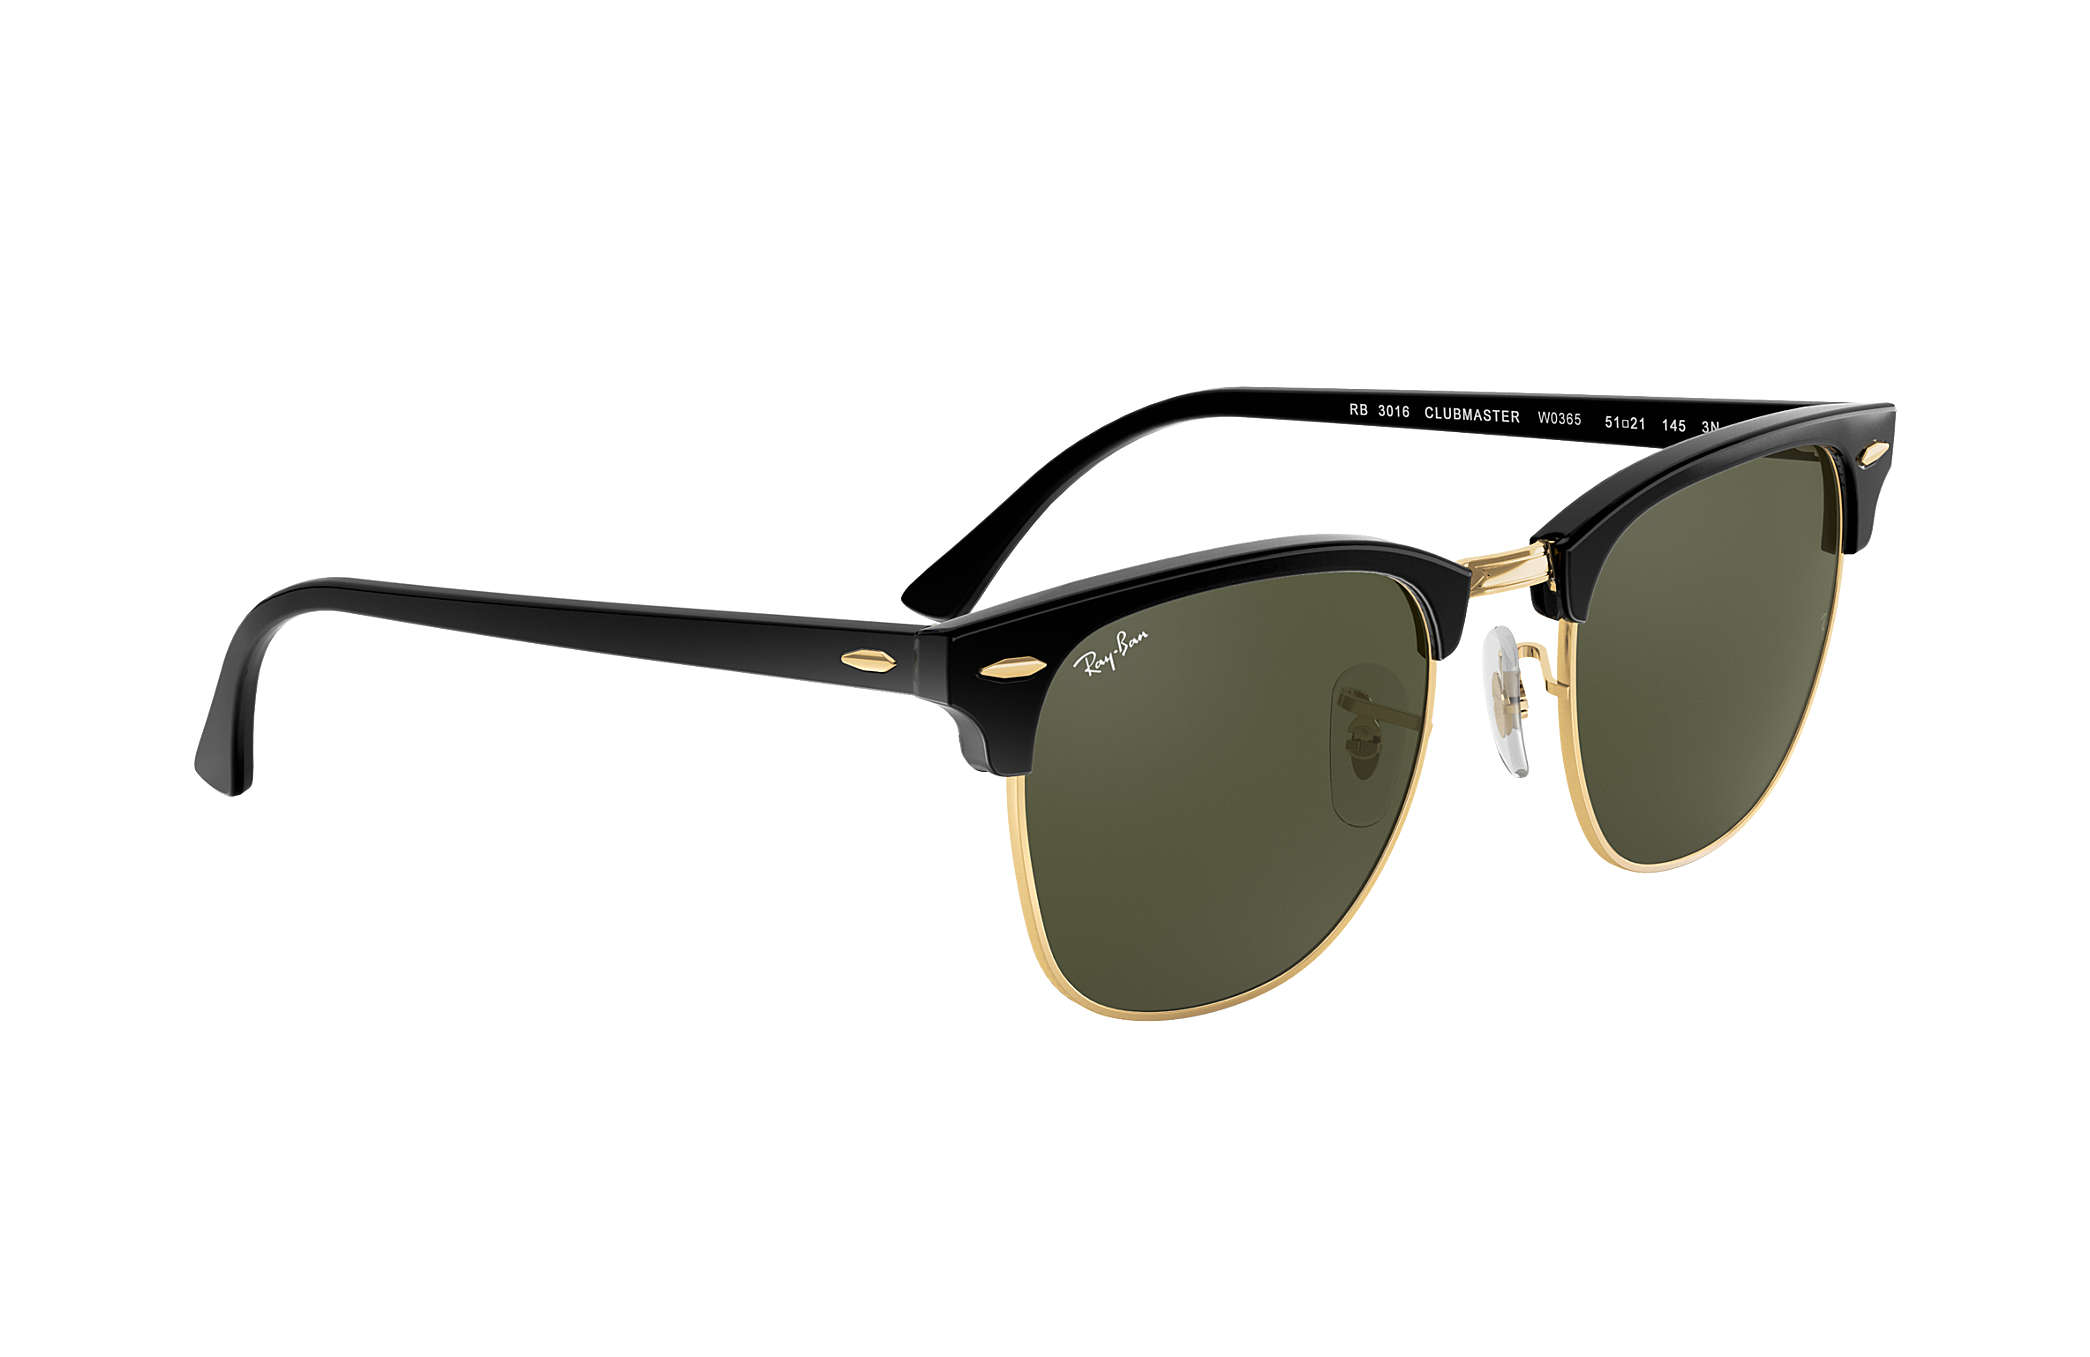 Ray Ban Rb 3016 Club Master W0365 rcOwRsERX